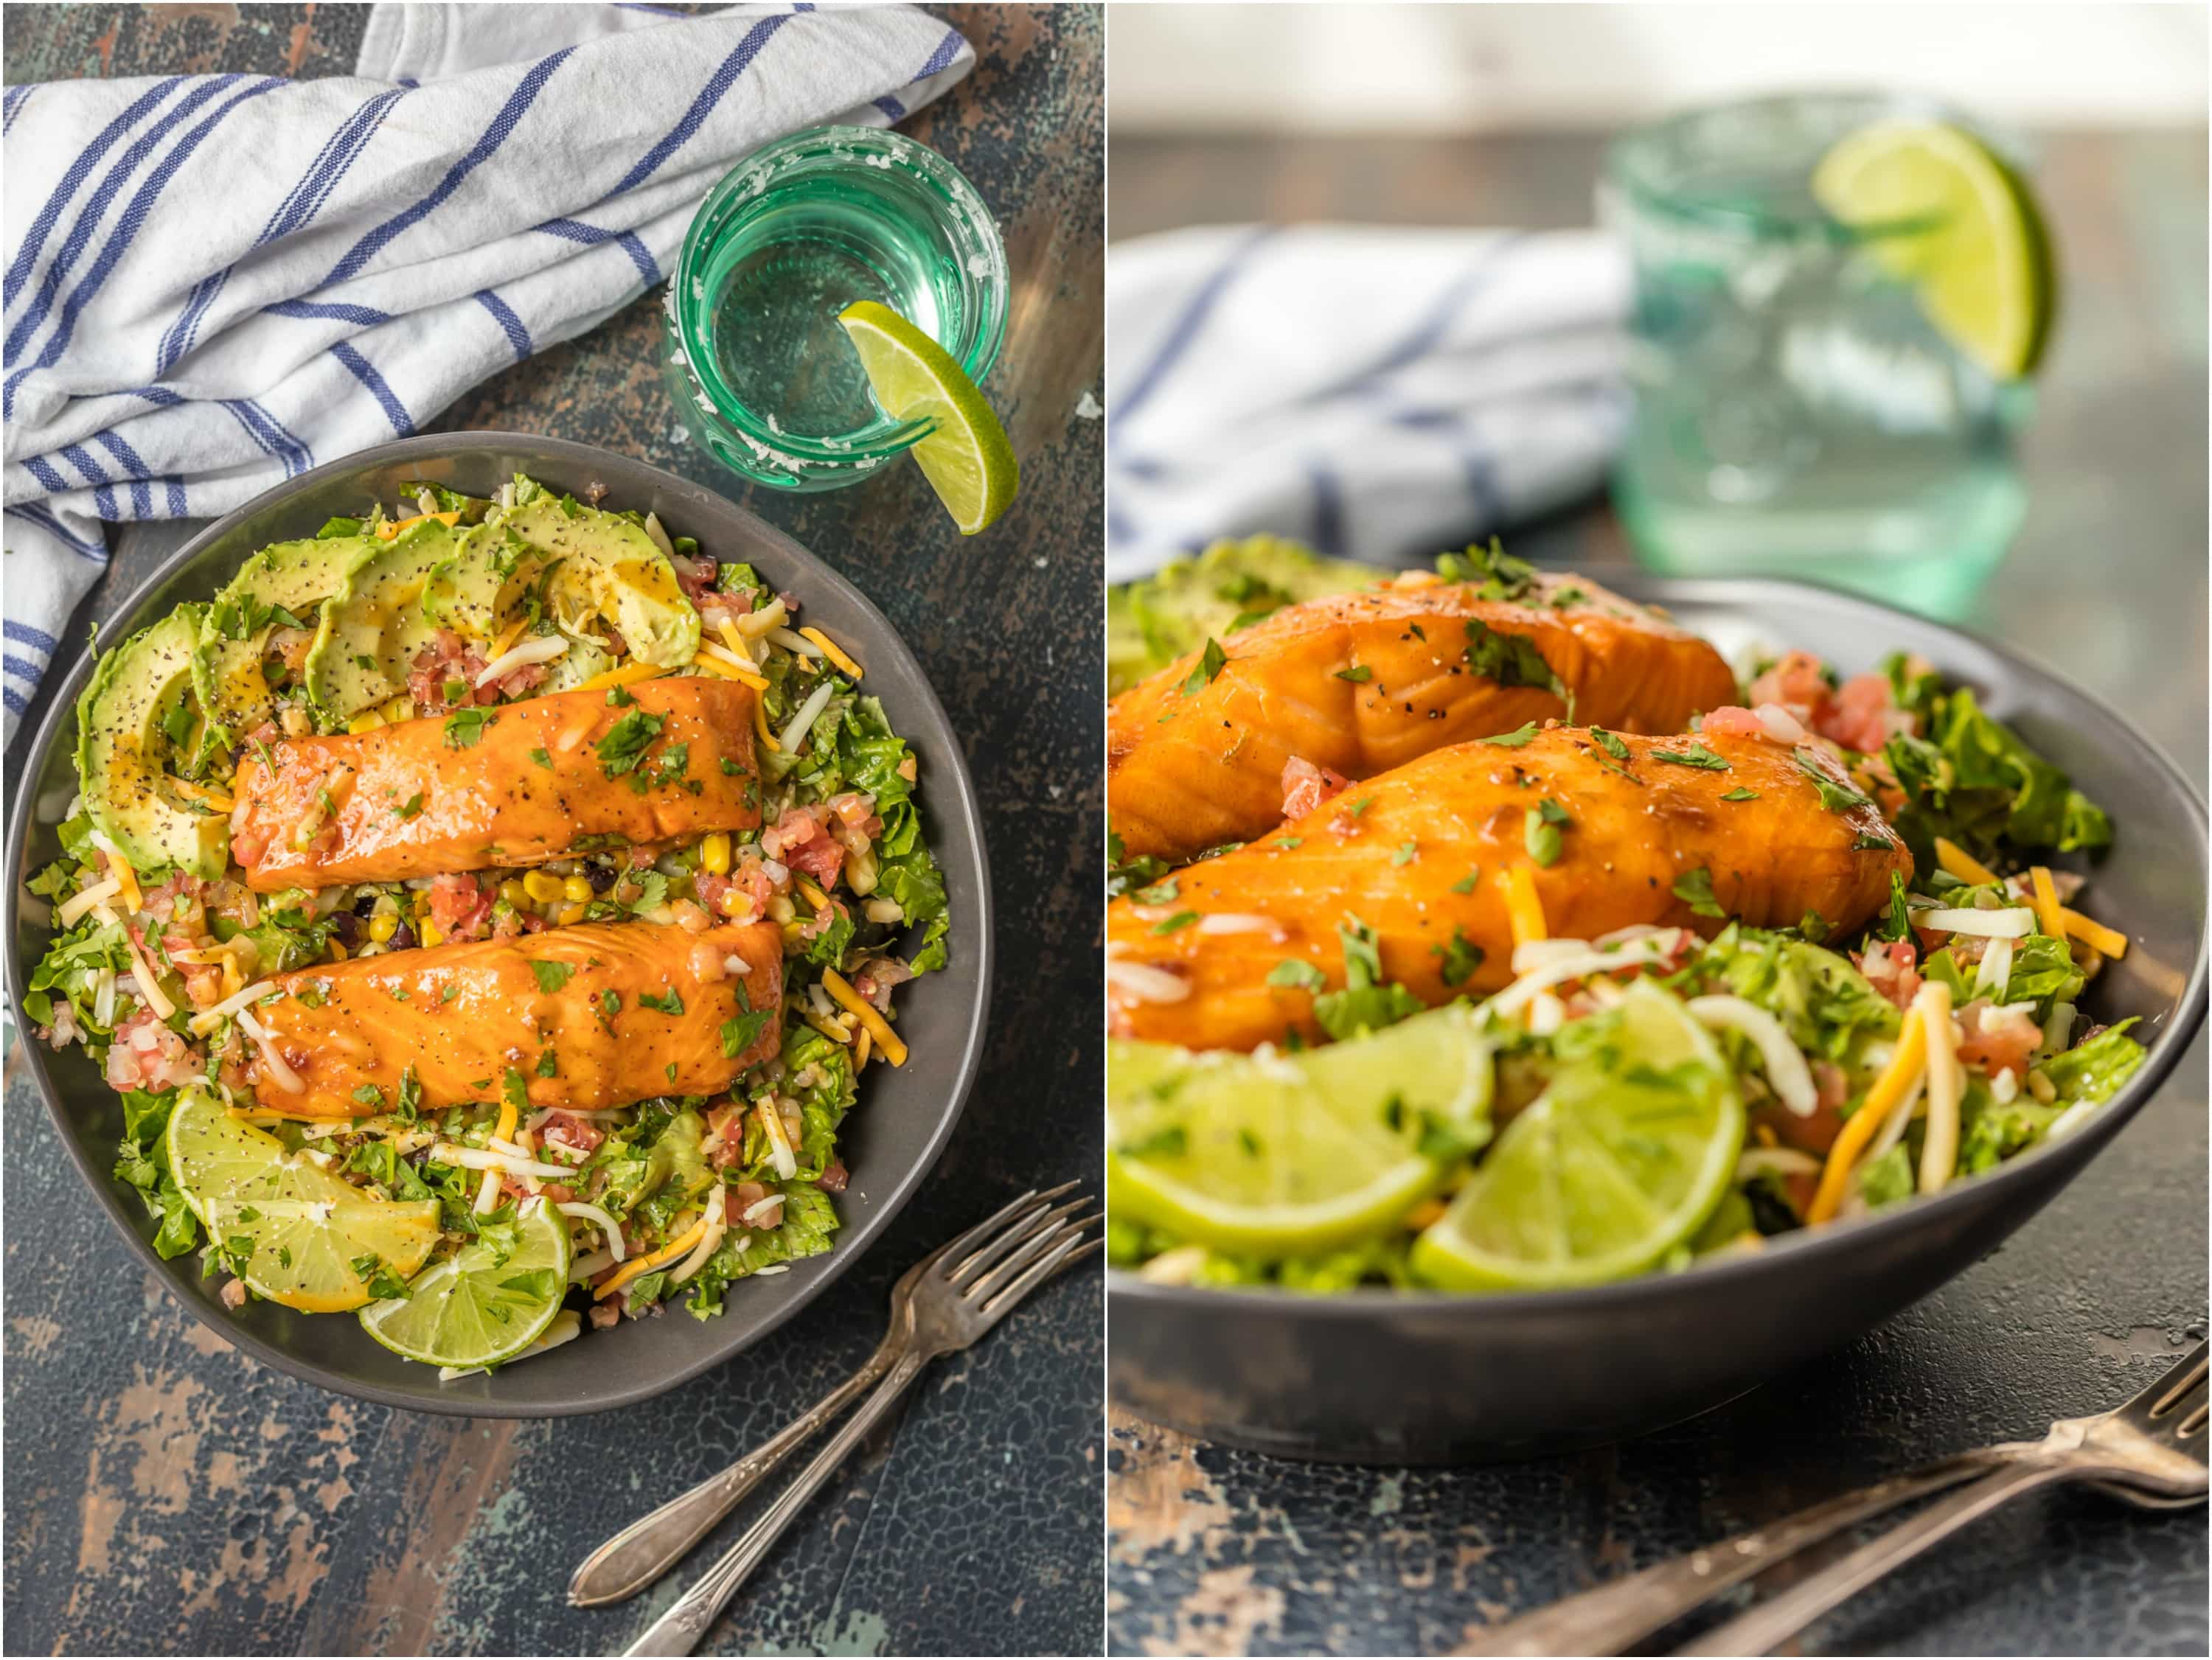 This TEQUILA LIME SALMON SALAD is the perfect hearty and delicious salad for any occasion! Salmon topped with a spicy tequila lime marinade and laid atop a bed of lettuce, corn, beans, avocado, pico, and more! SO MUCH FLAVOR!